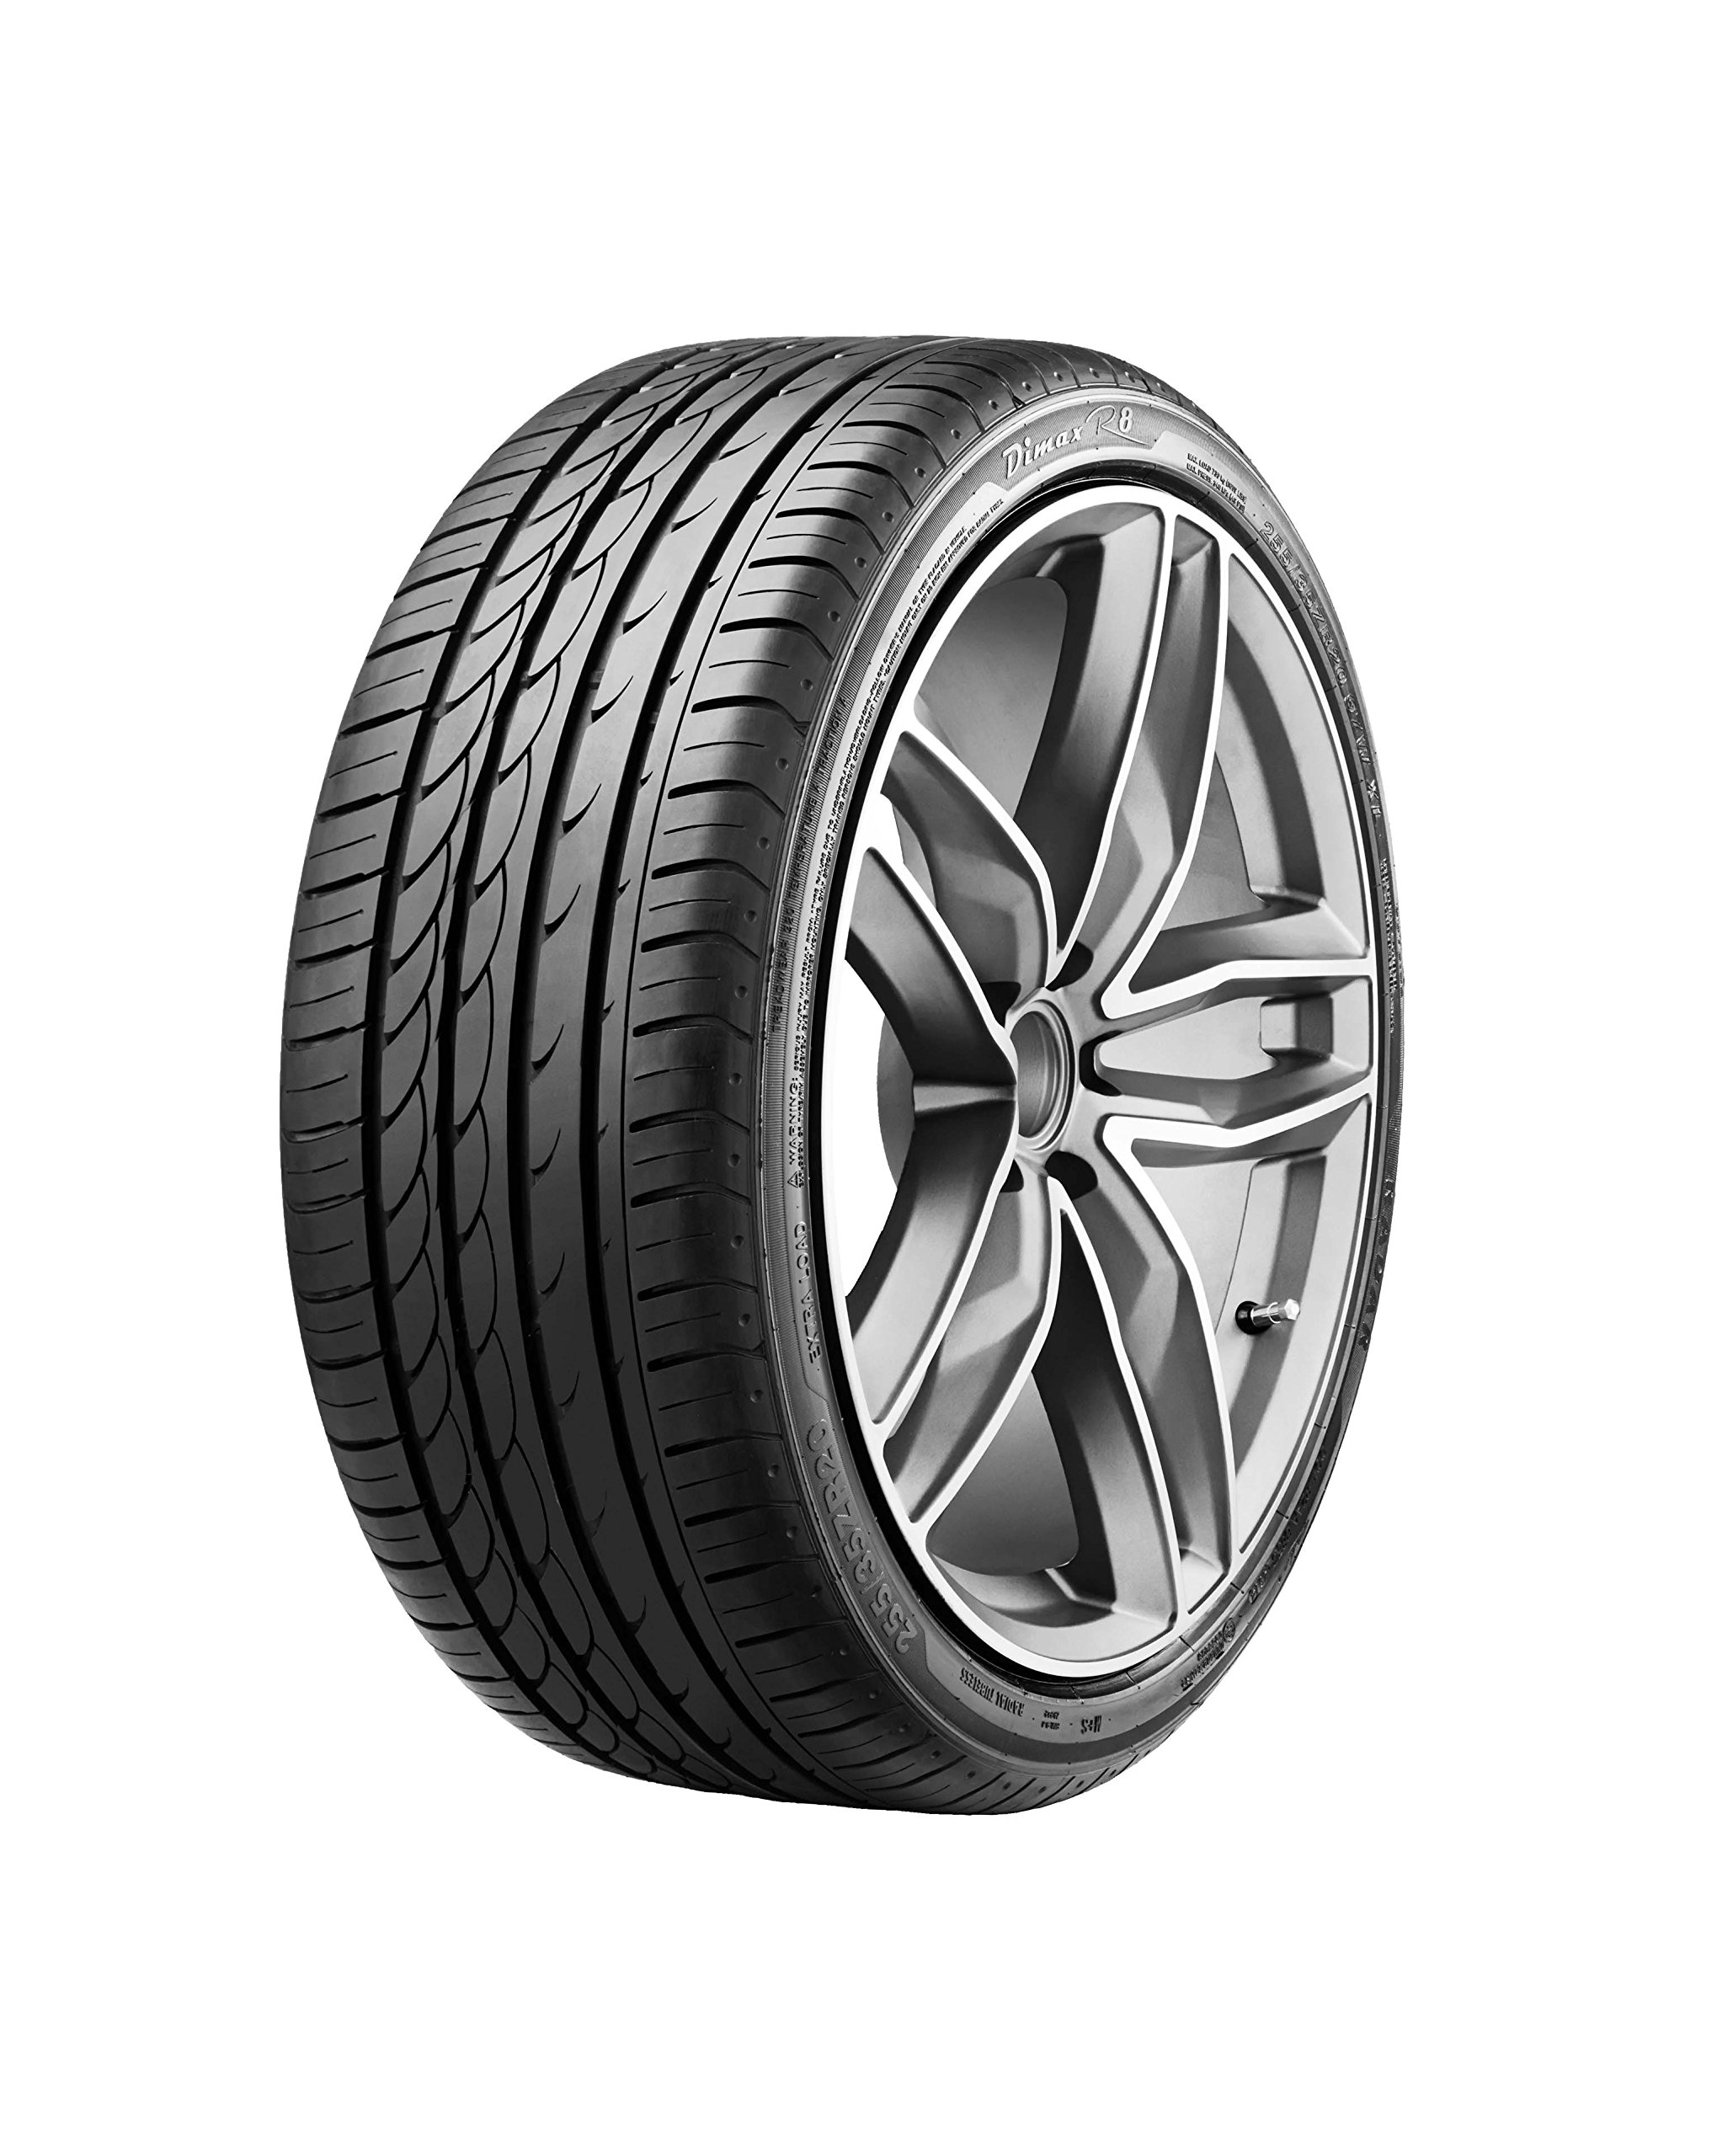 Radar Tires Dimax R8 Performance Radial Tire - 205/45ZR17 88Y